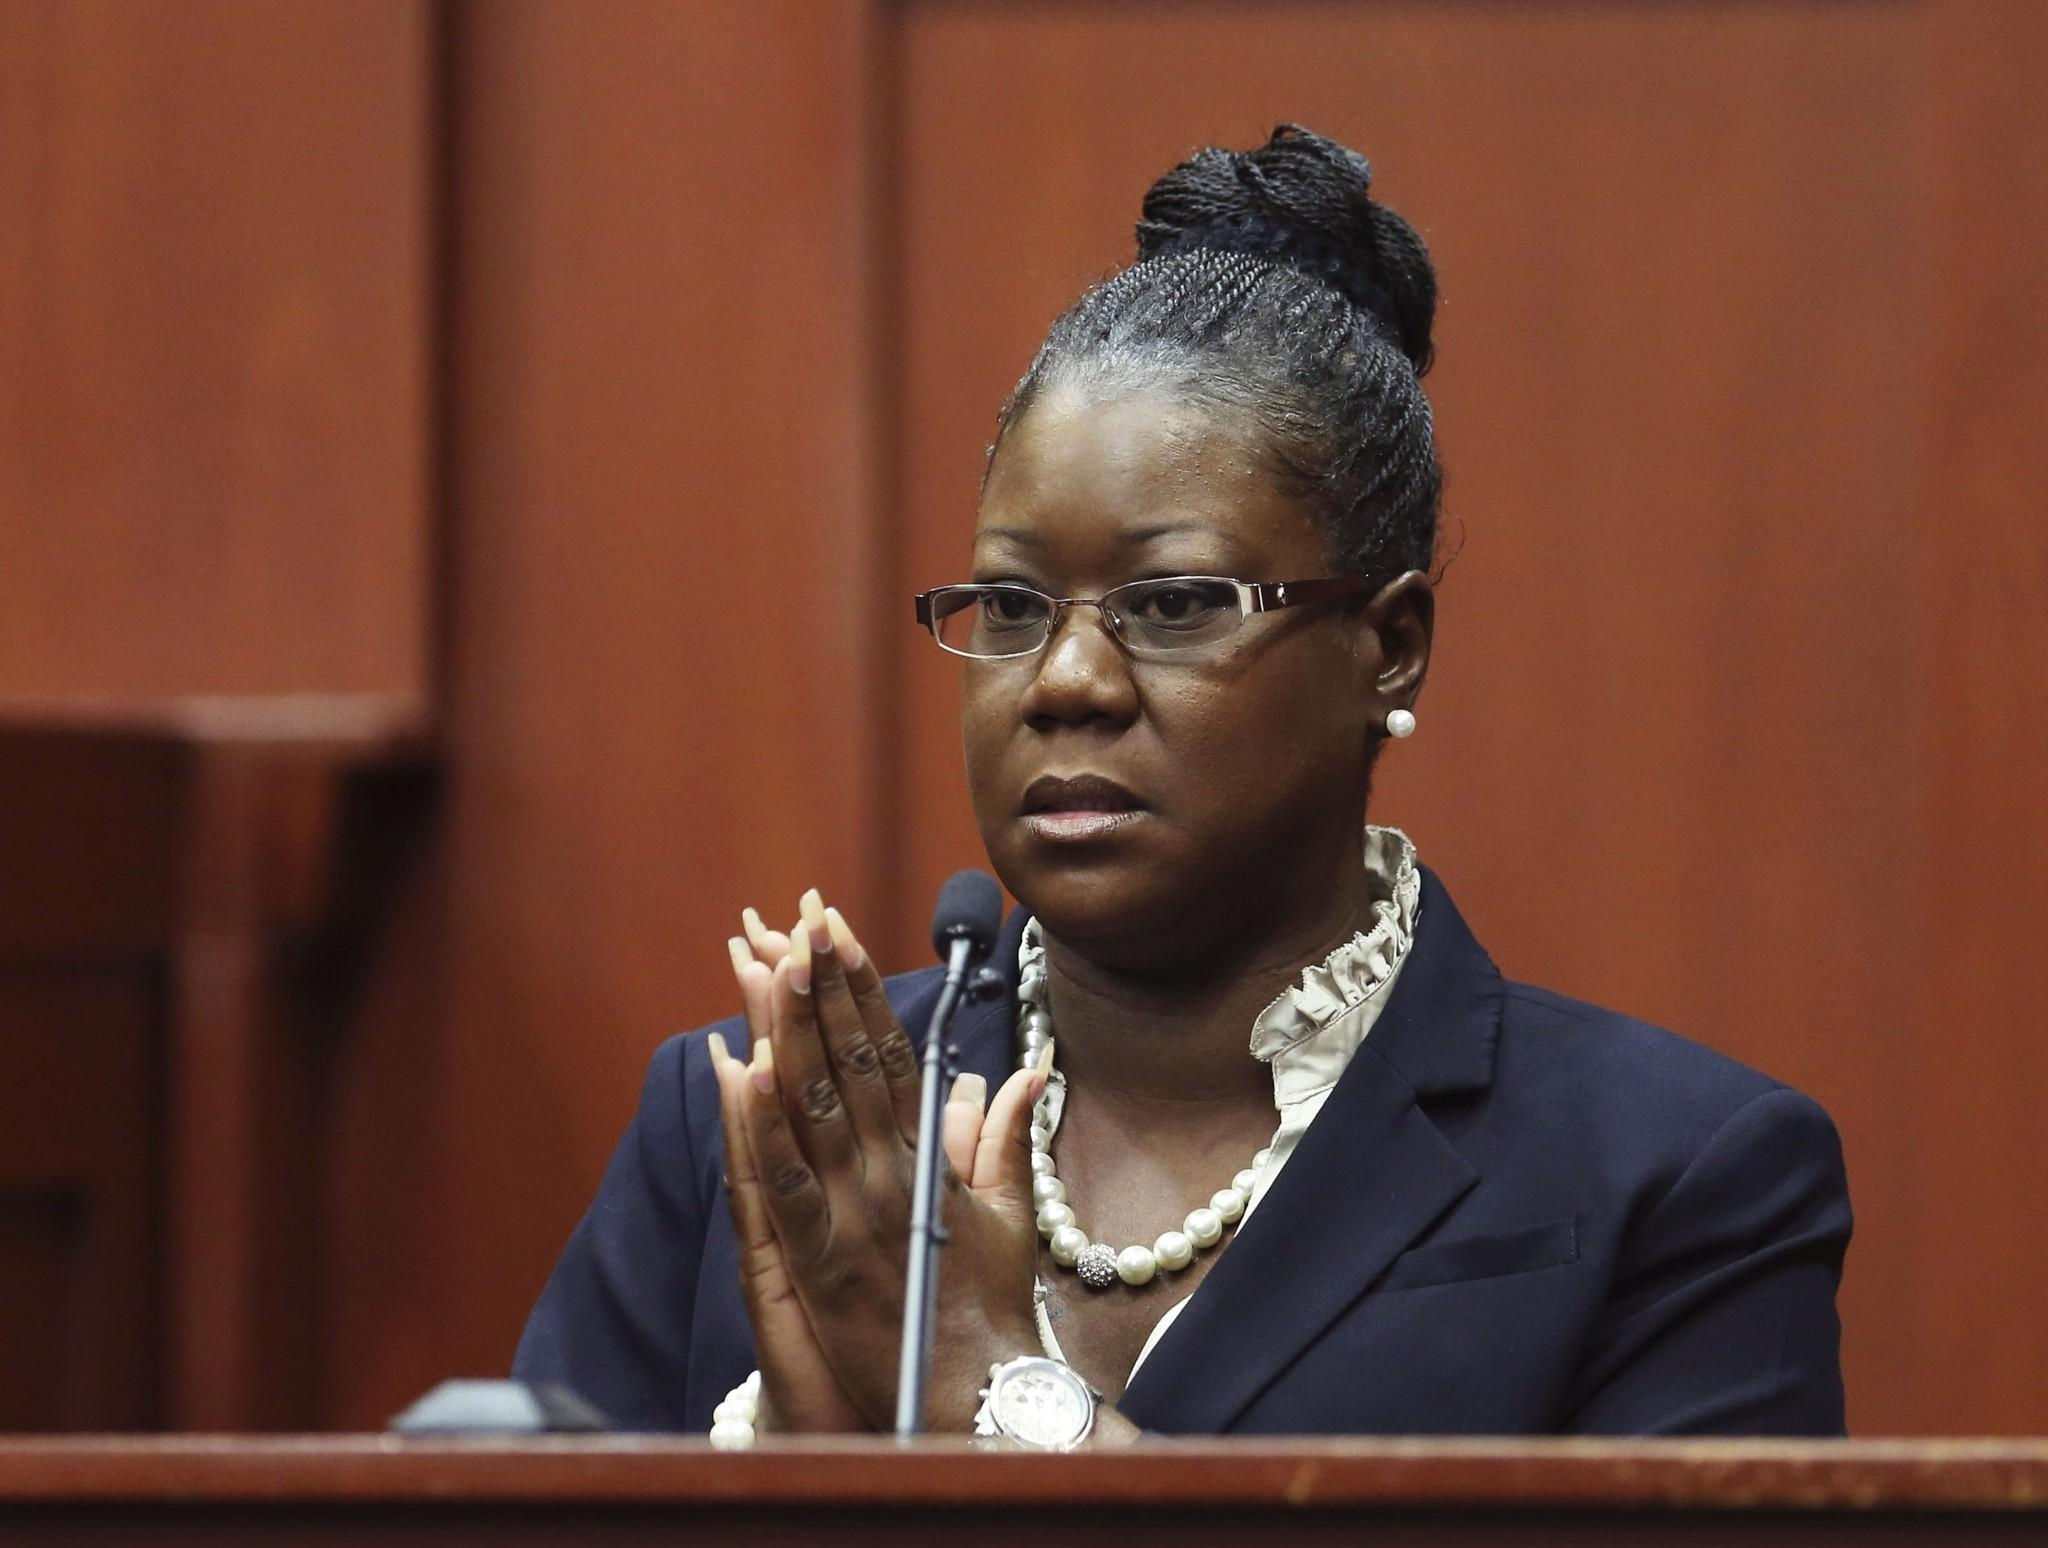 Trayvon Martin's mother, Sybrina Fulton, takes the stand during George Zimmerman's trial in Seminole circuit court in Sanford, Florida July 5, 2013. Zimmerman was charged with second-degree murder for the 2012 shooting death of Trayvon Martin but was acquitted.